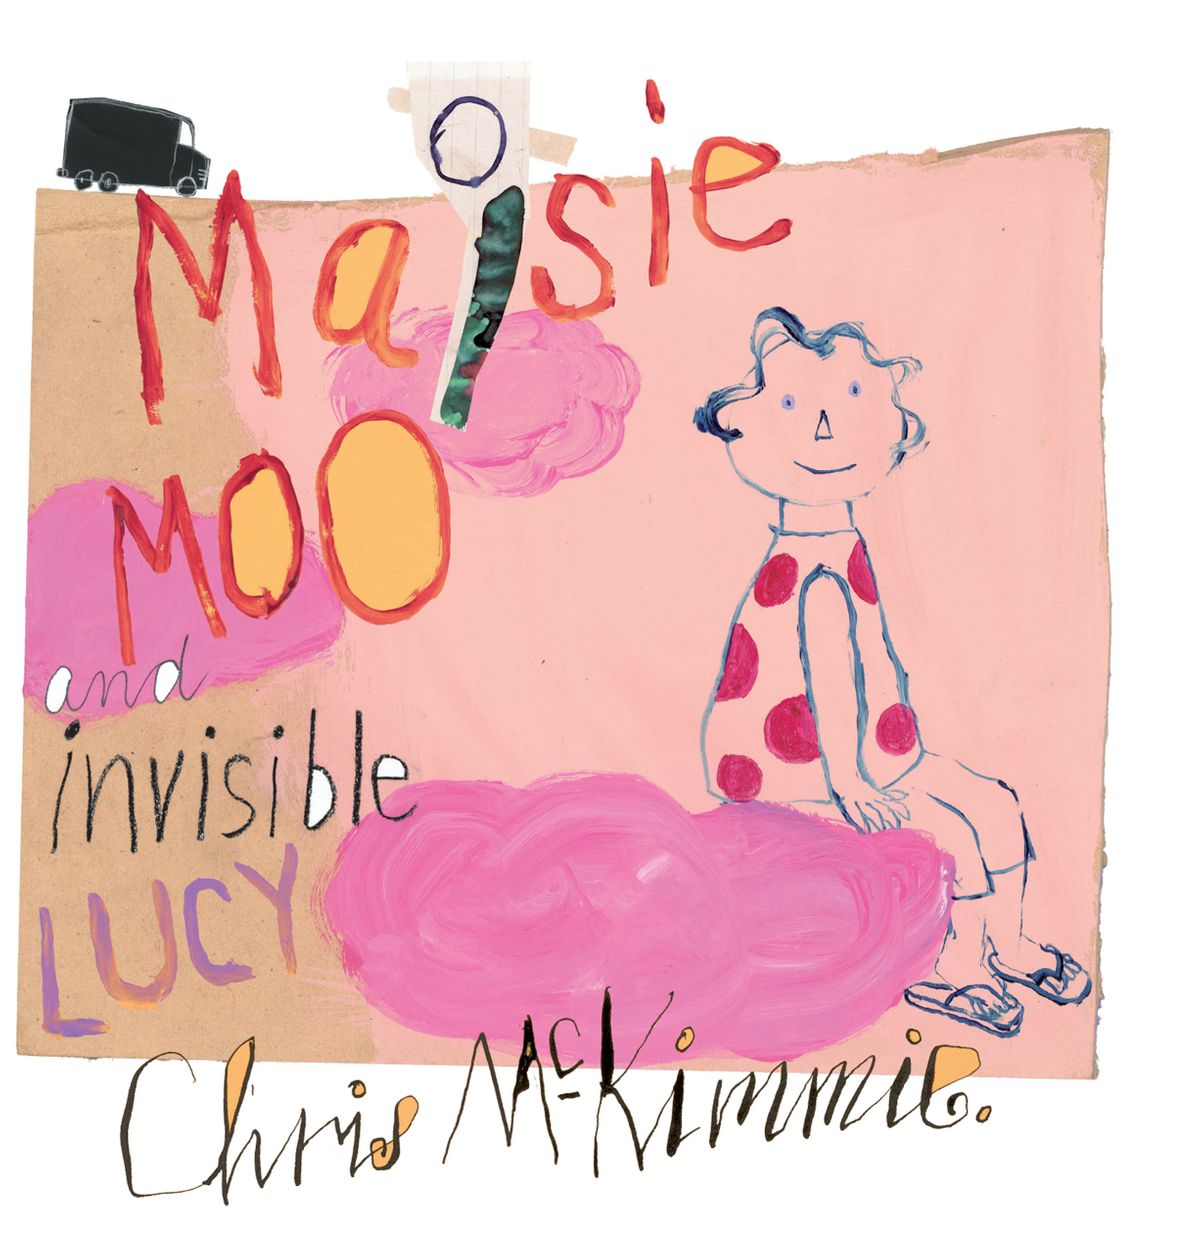 Maisie Moo and Invisible Lucy - eBook